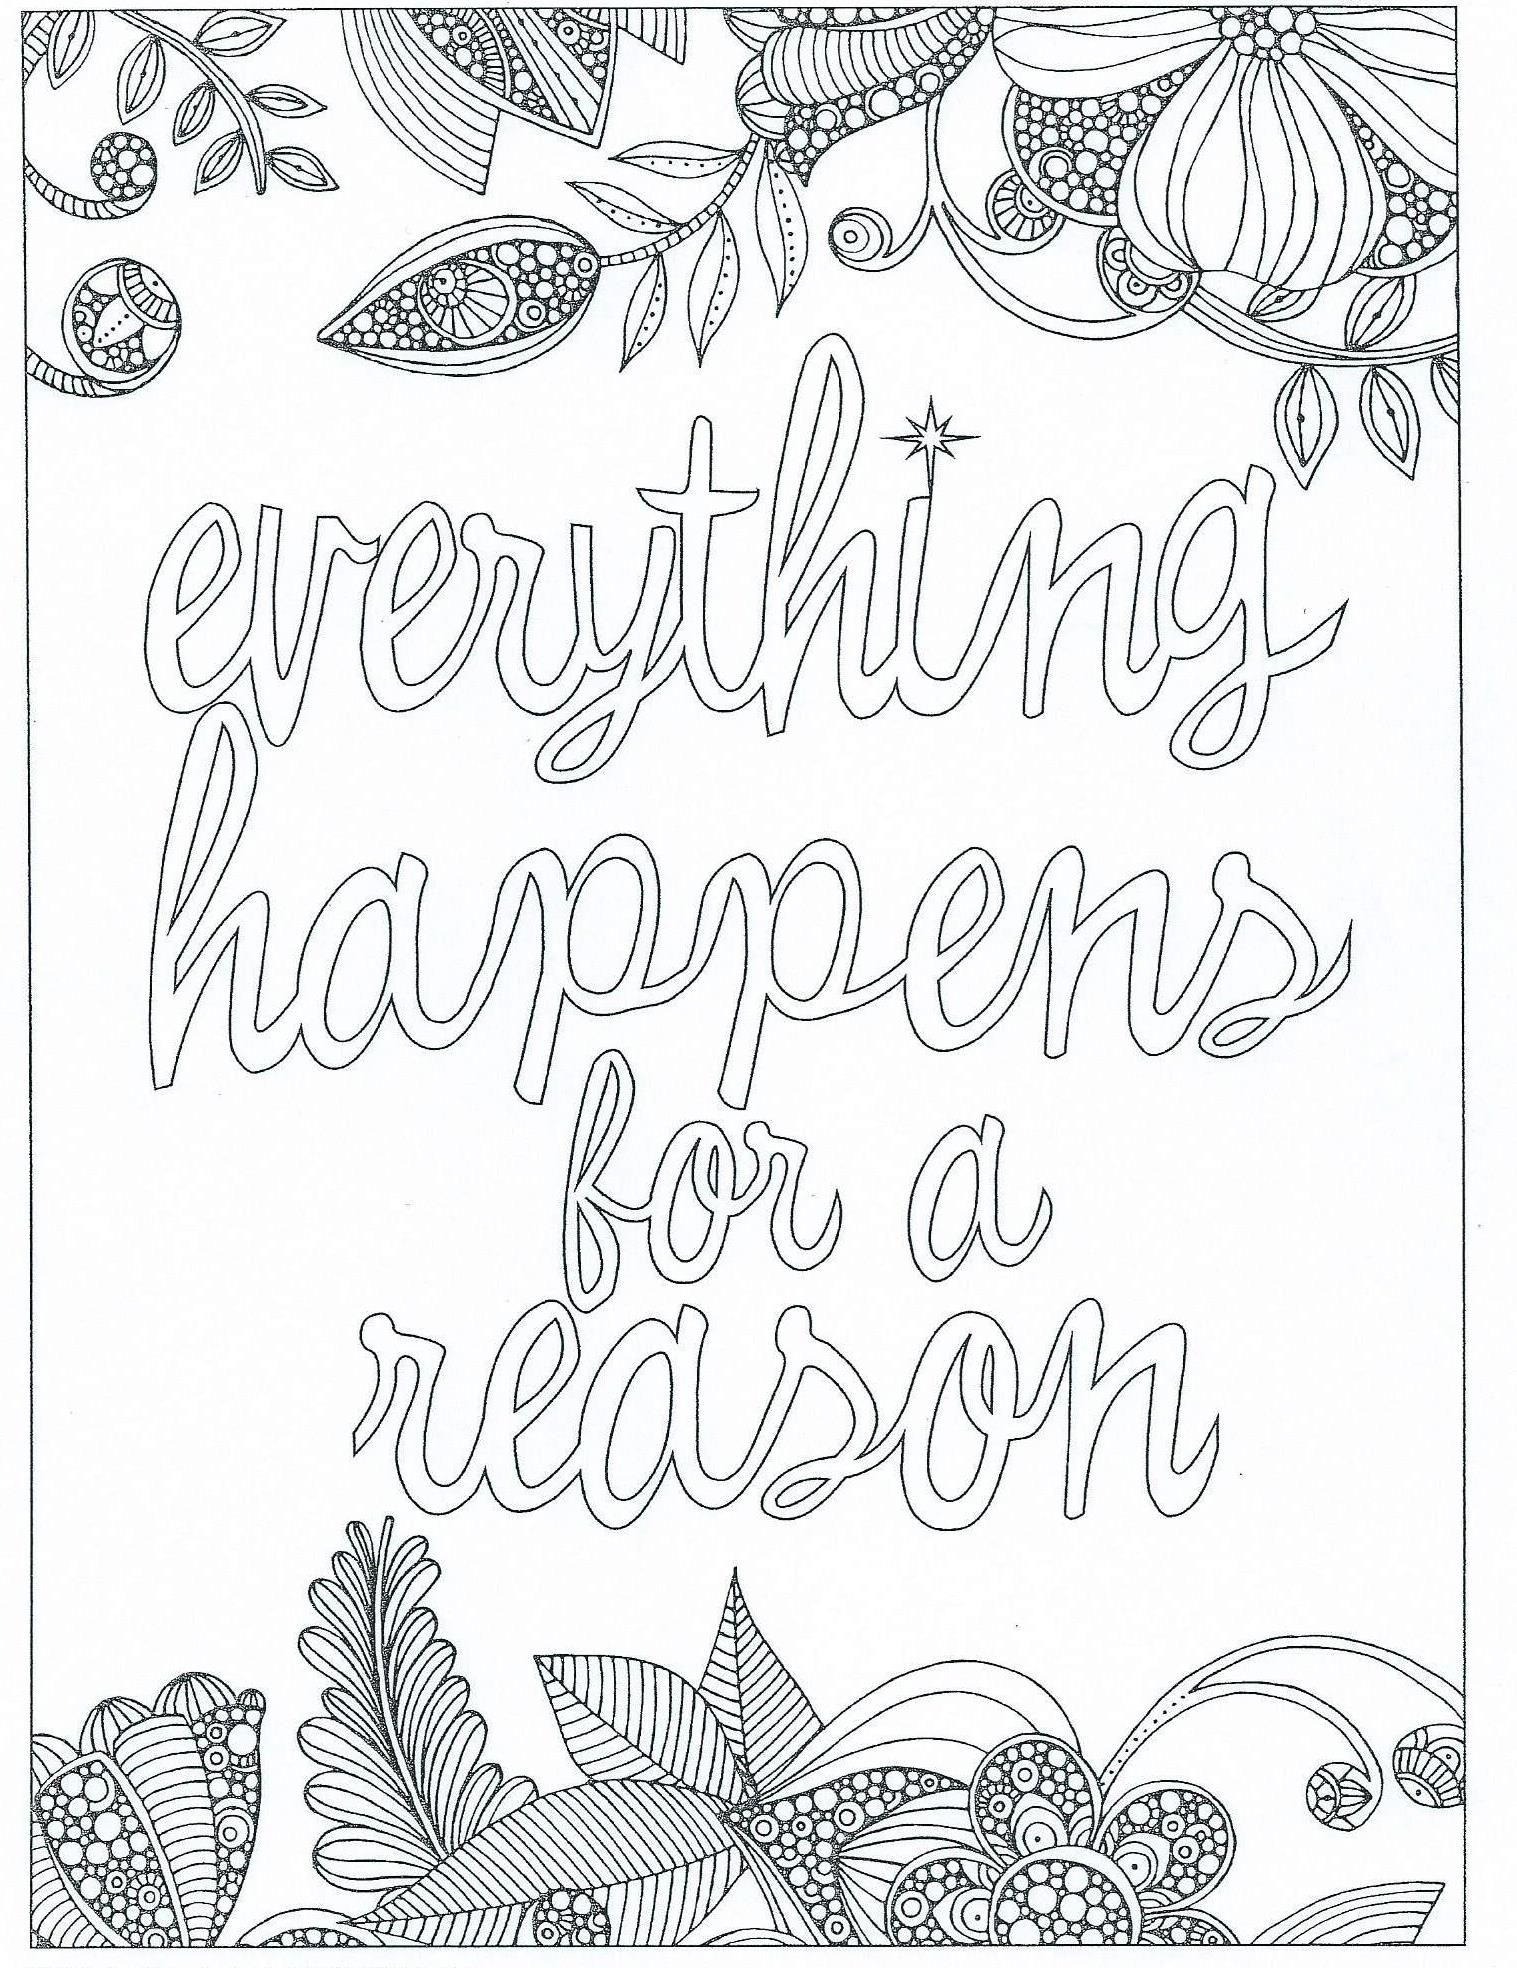 Everything Happens For A Reason Coloring Page Coloring Pages